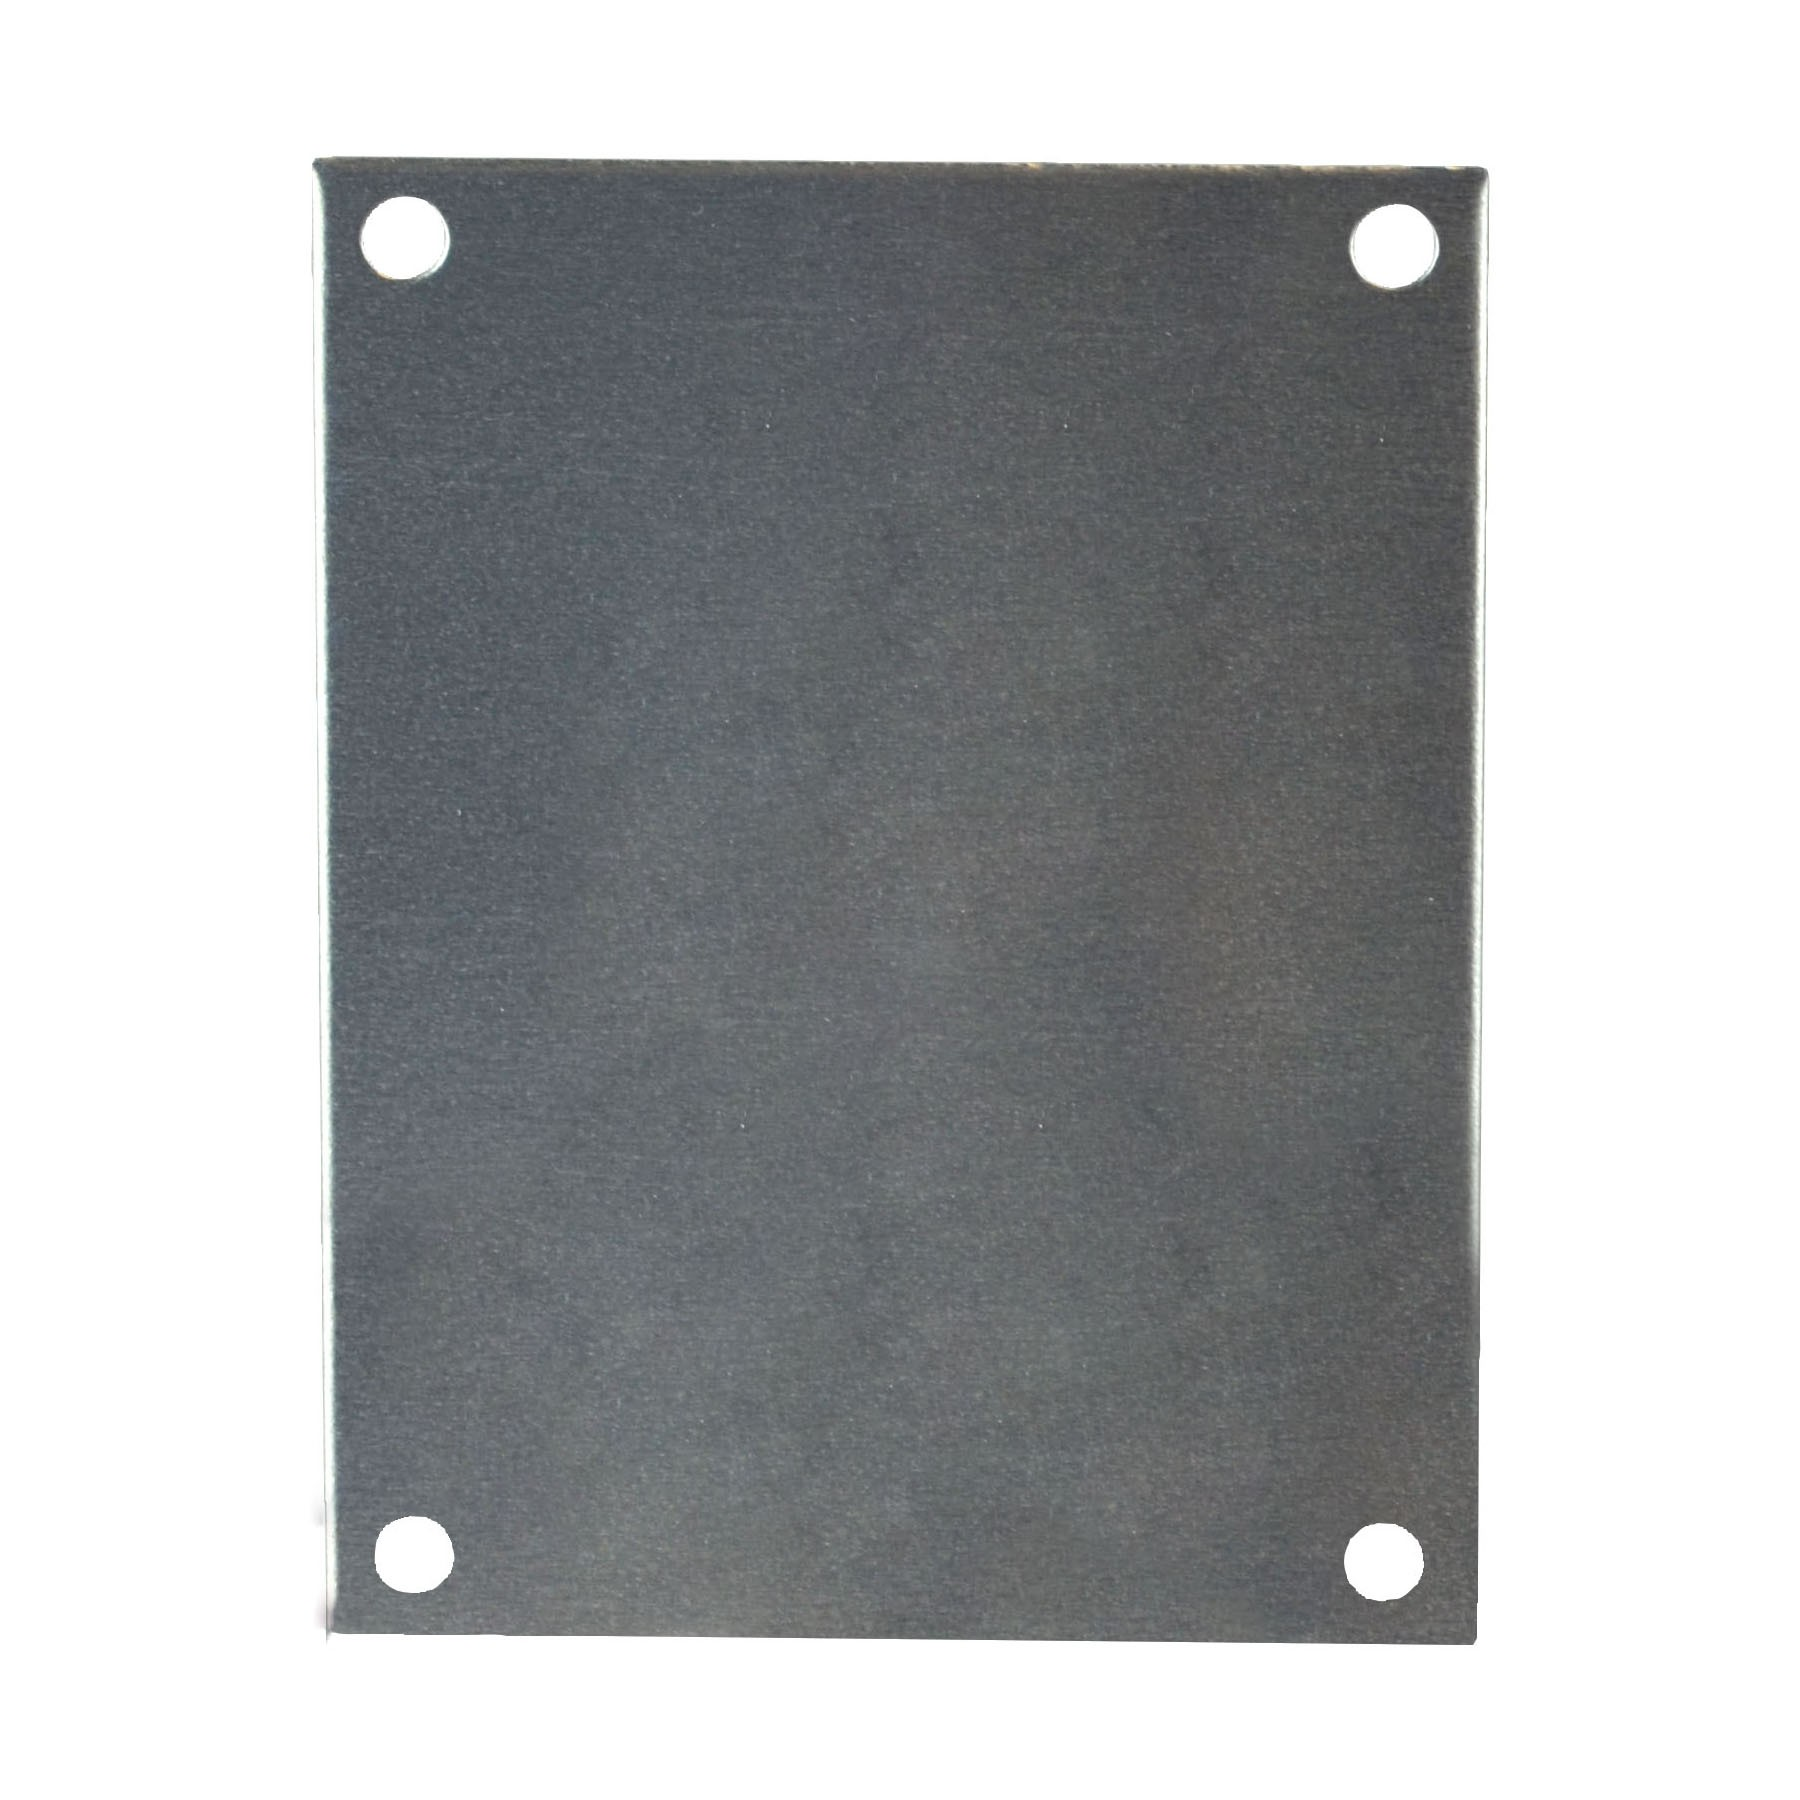 "Aluminum Back Panel for 7"" x 4"" x 3"" Enclosures"